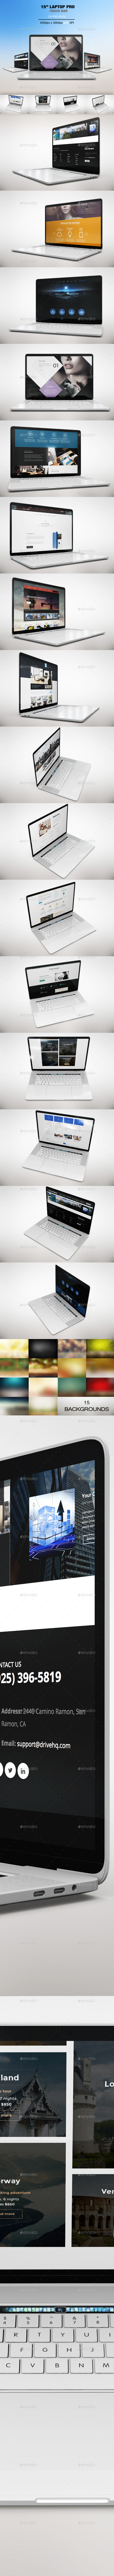 "15"" Laptop Pro Touch Bar Mockup - Laptop Displays"